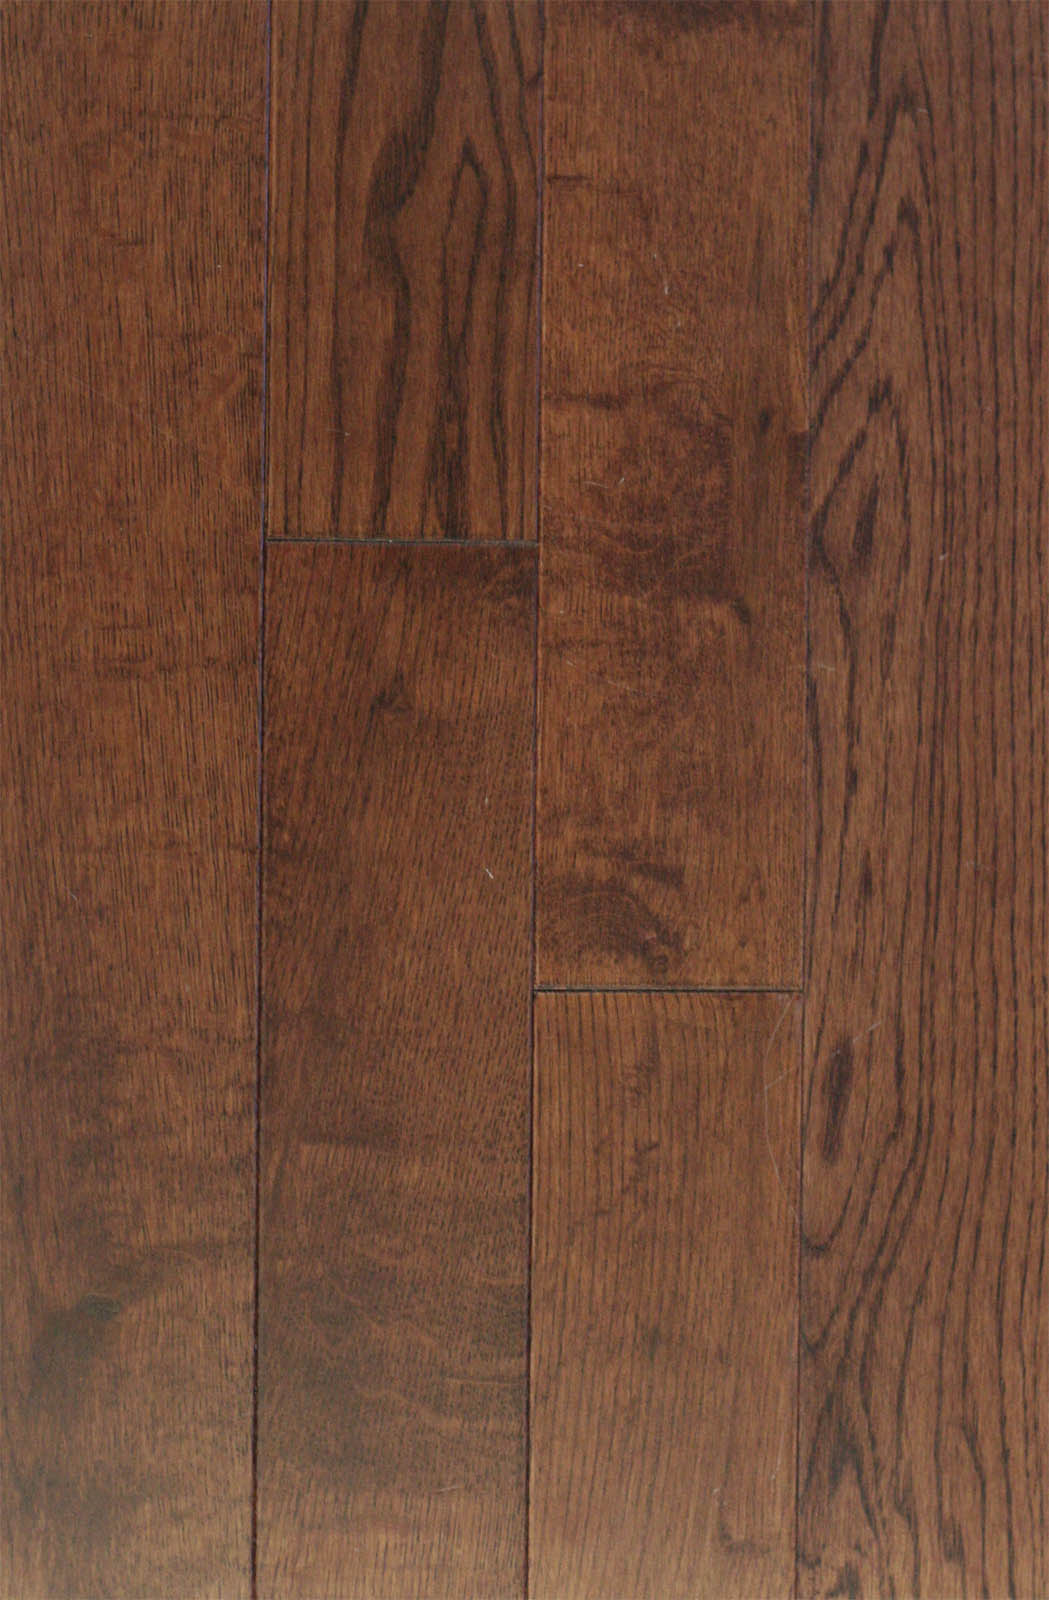 Engineered Hardwood Floors White Oak Engineered Hardwood